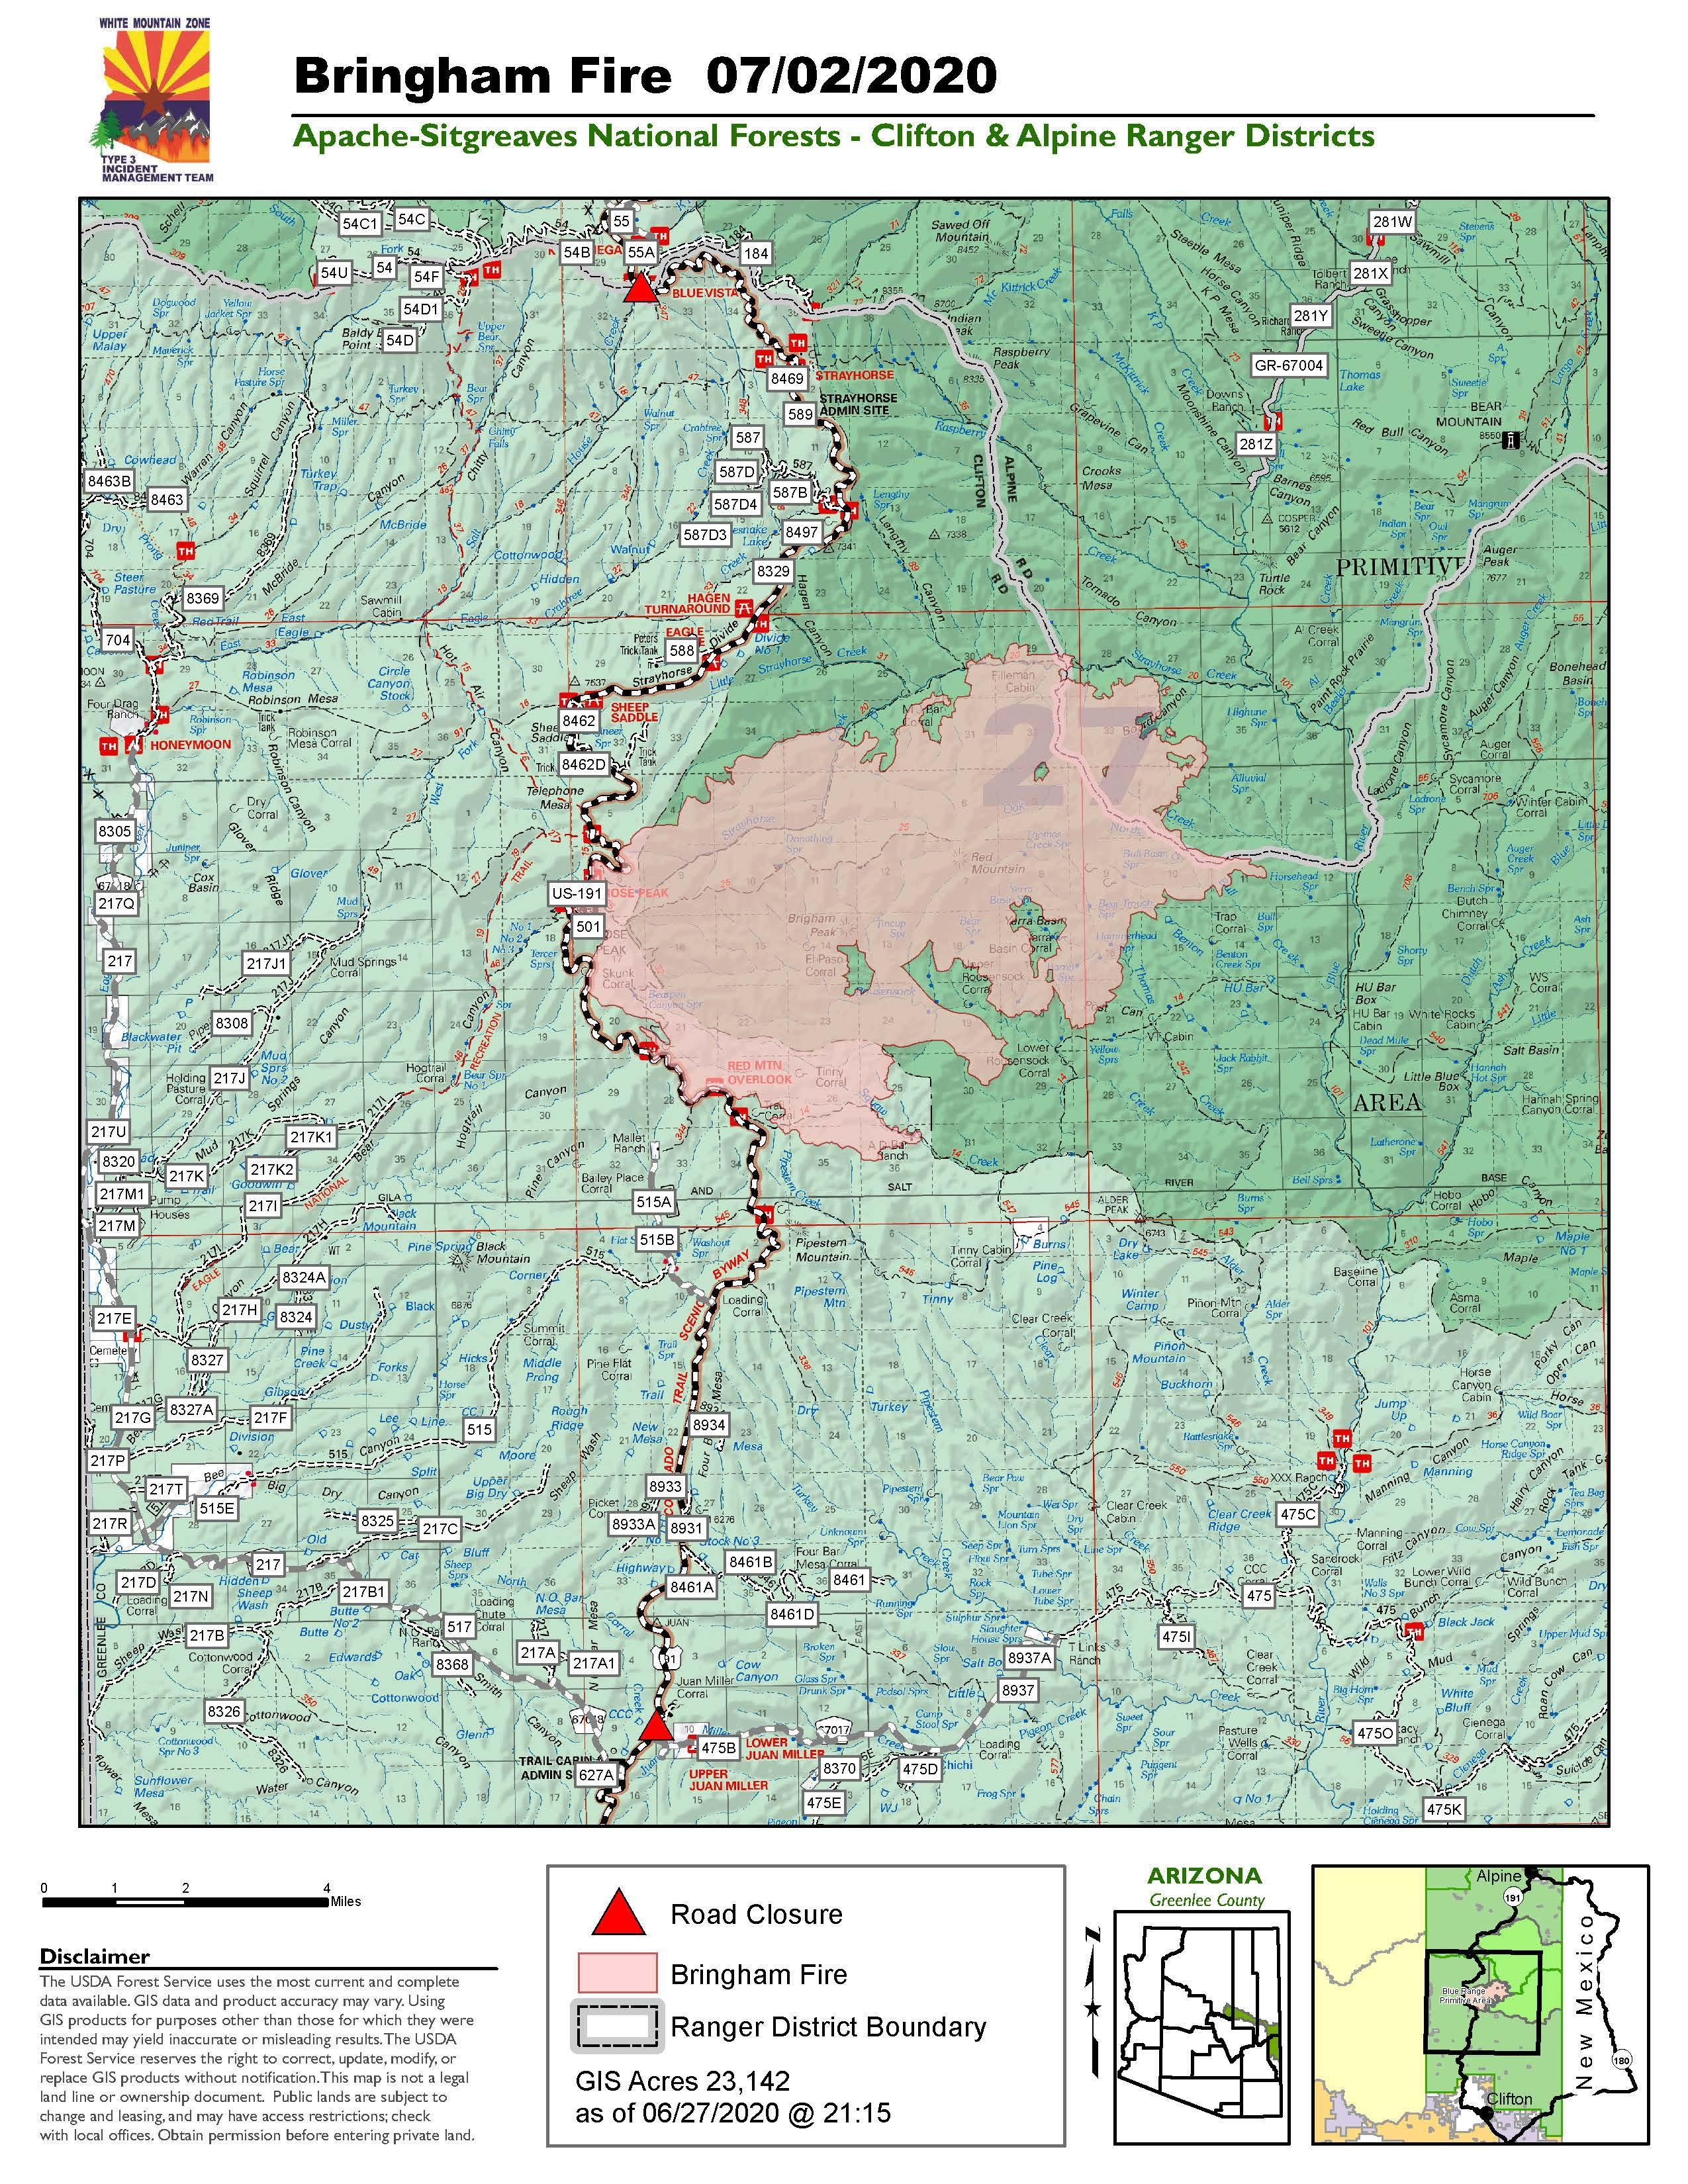 July 02 Bringham Fire Map